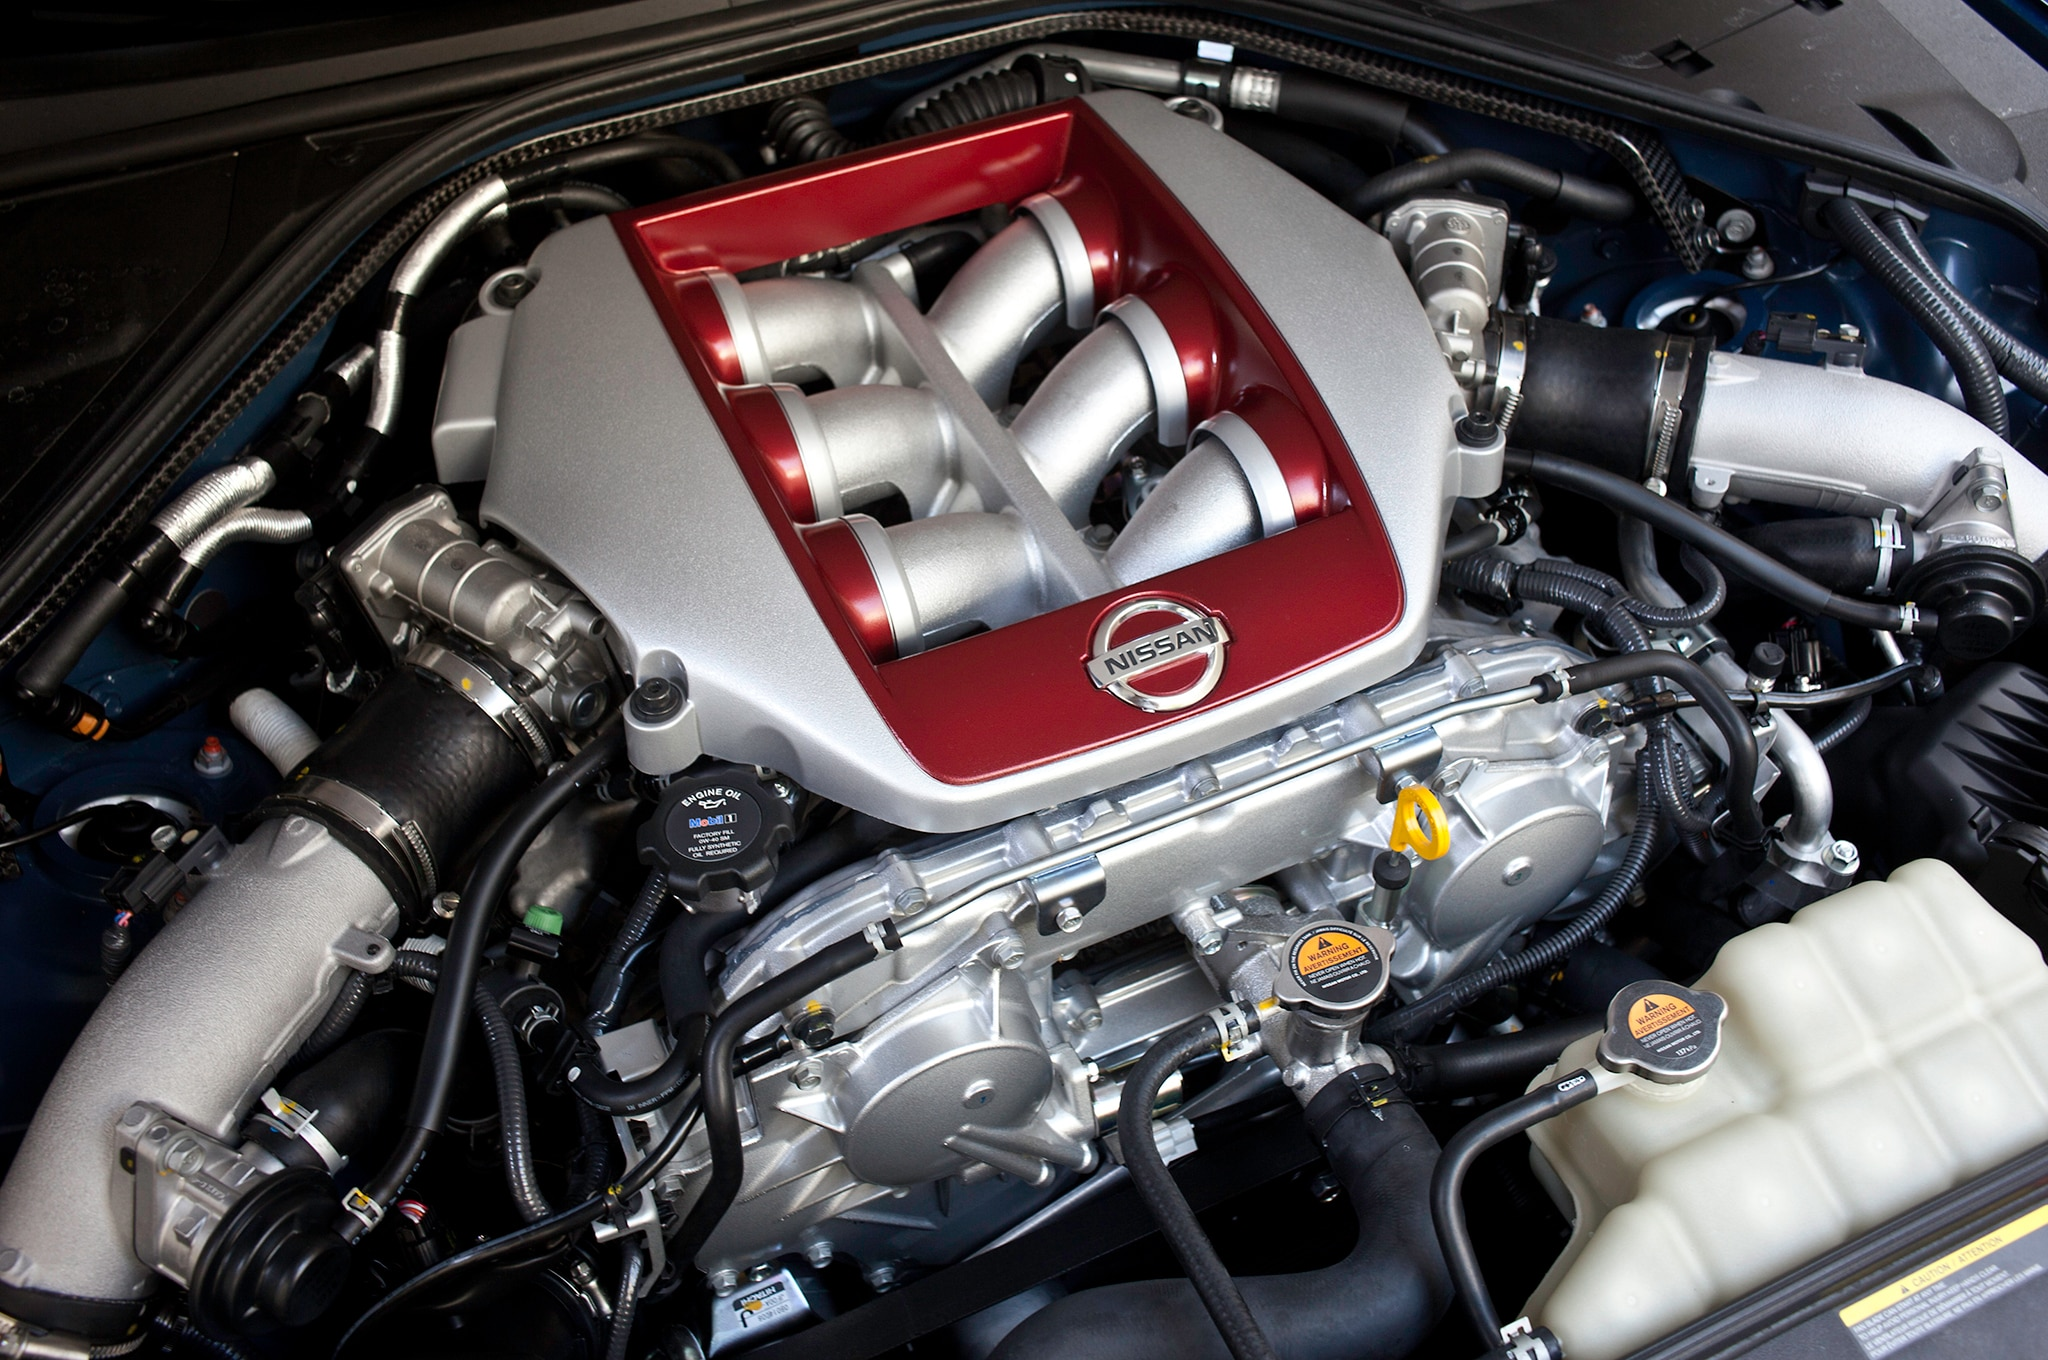 Constant Refresh A Look at the Nissan GTR from 2009 to 2013